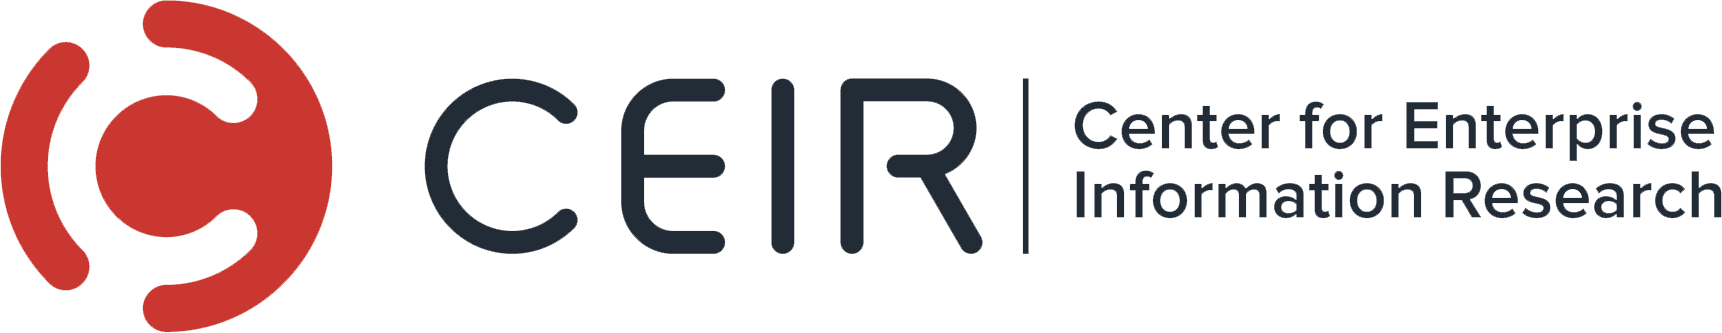 ceir-logo-sw-transparent